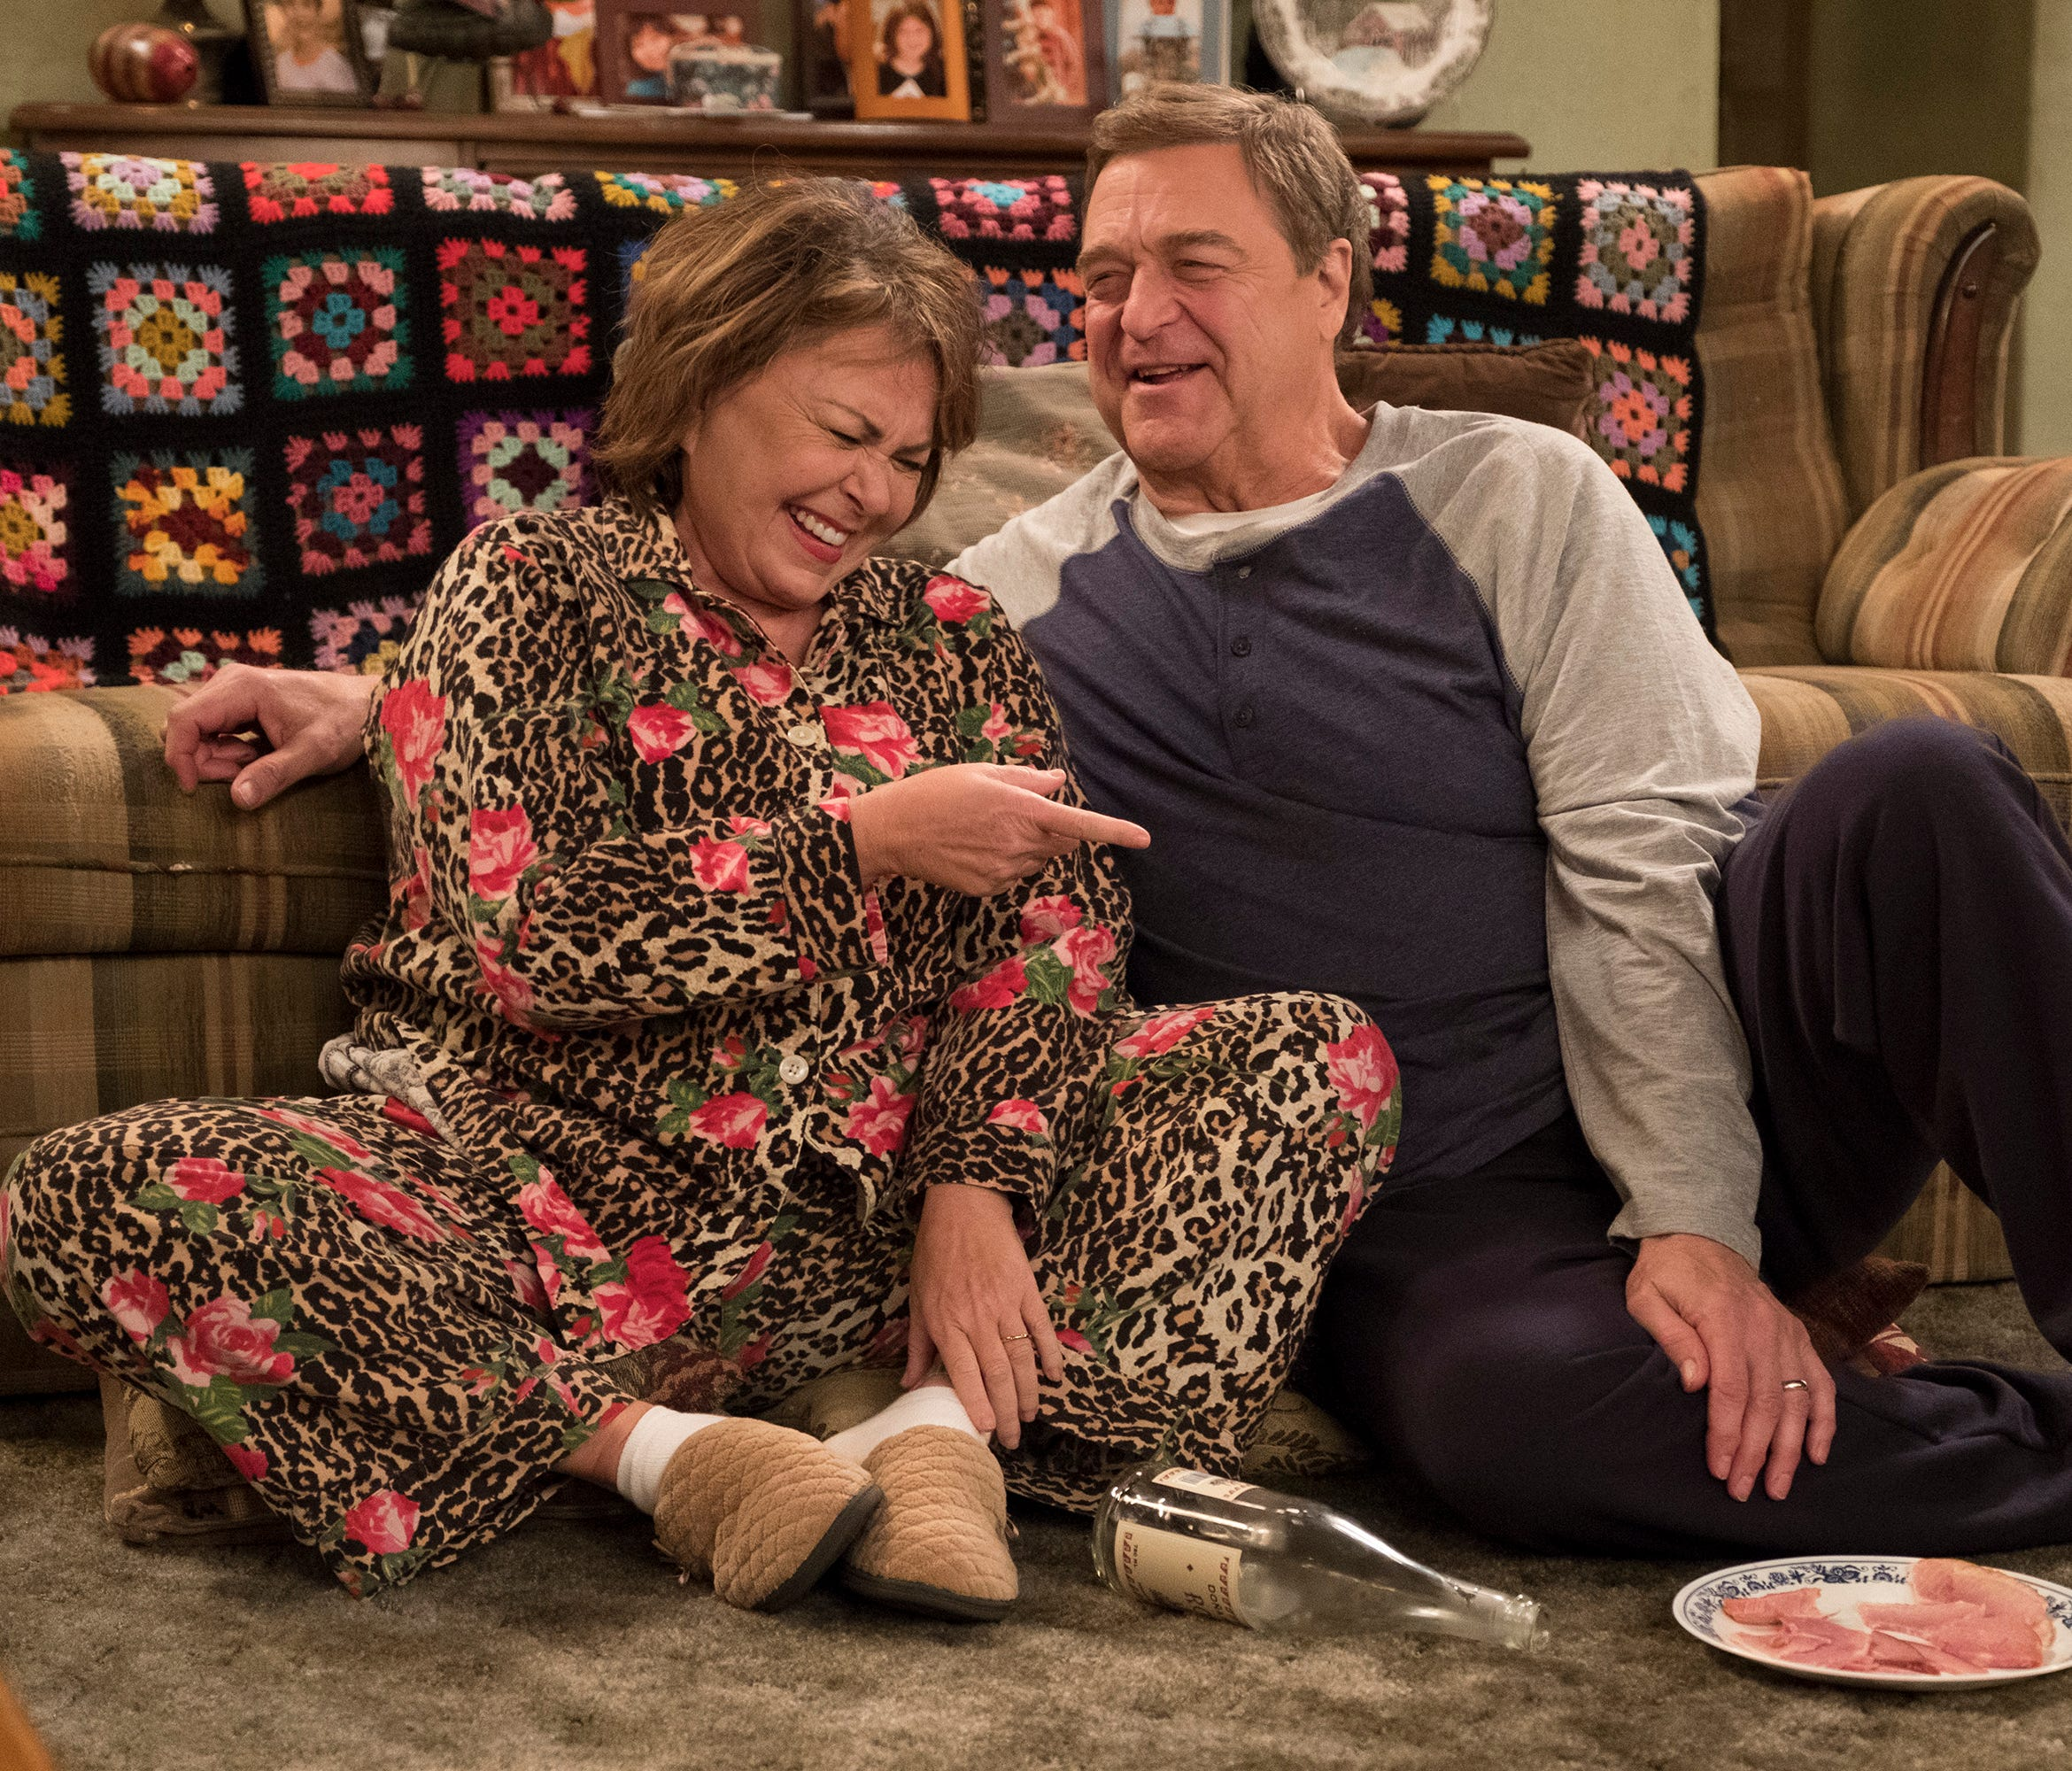 Roseanne Barr as Roseanne and John Goodman as Dan on